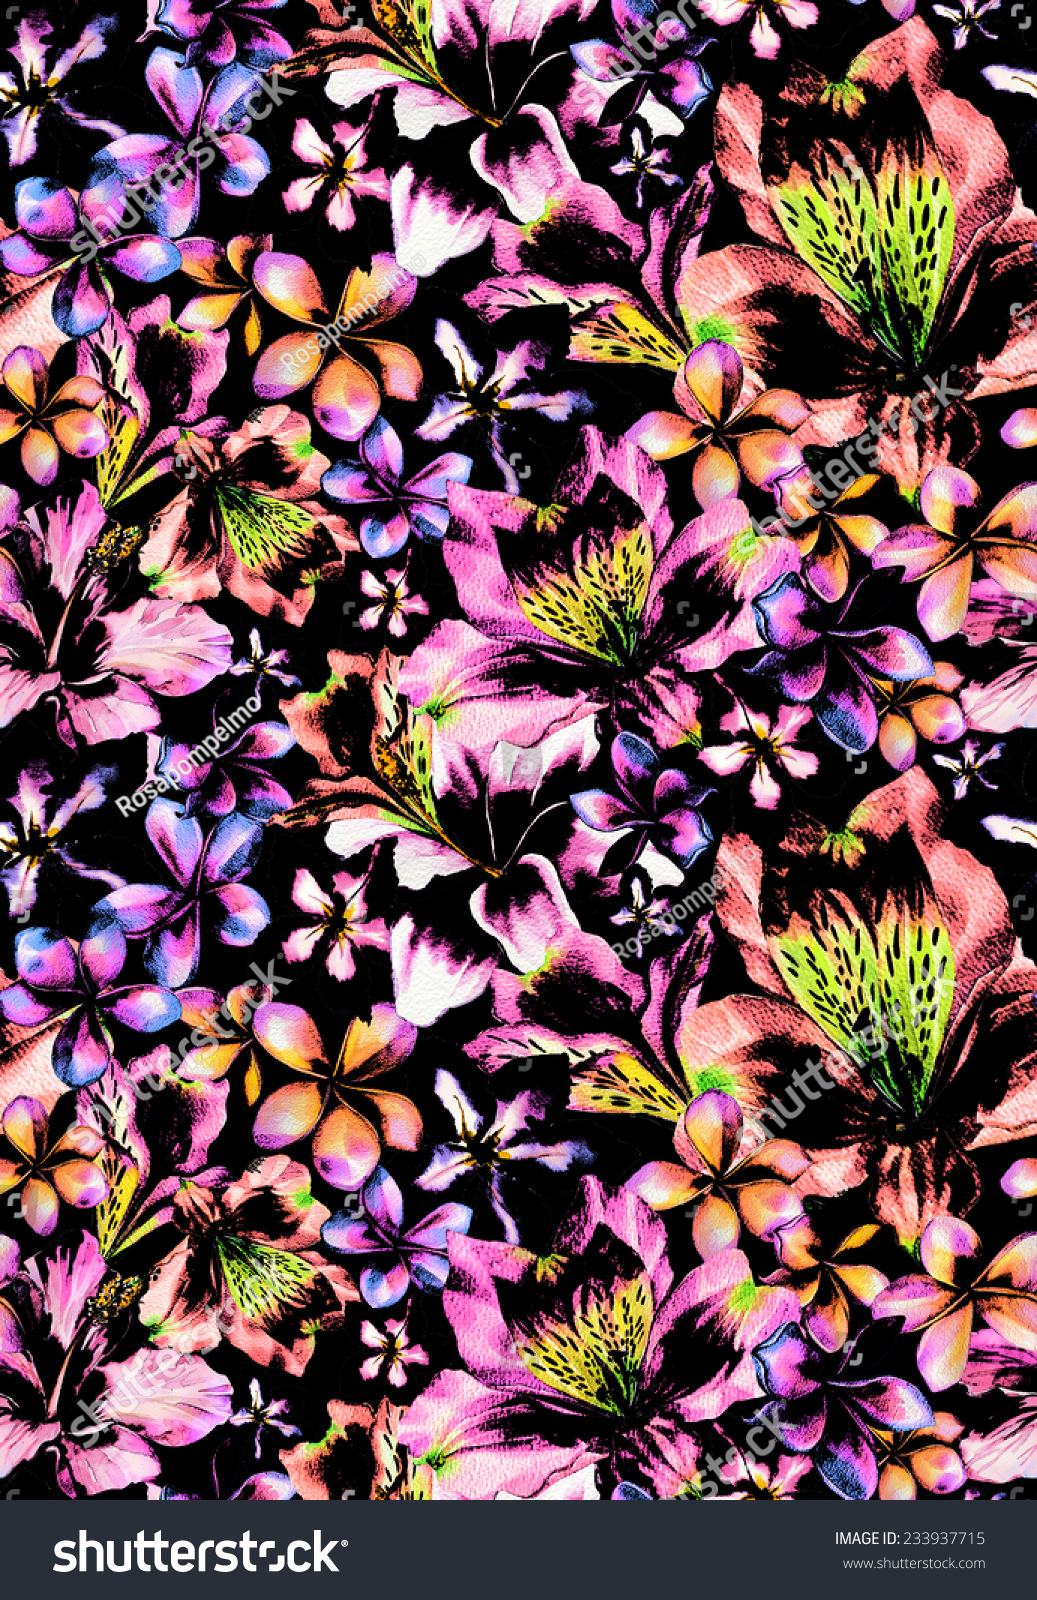 Seamless Dark Tropical Pattern Made Of Exotic Flower Heads Looks